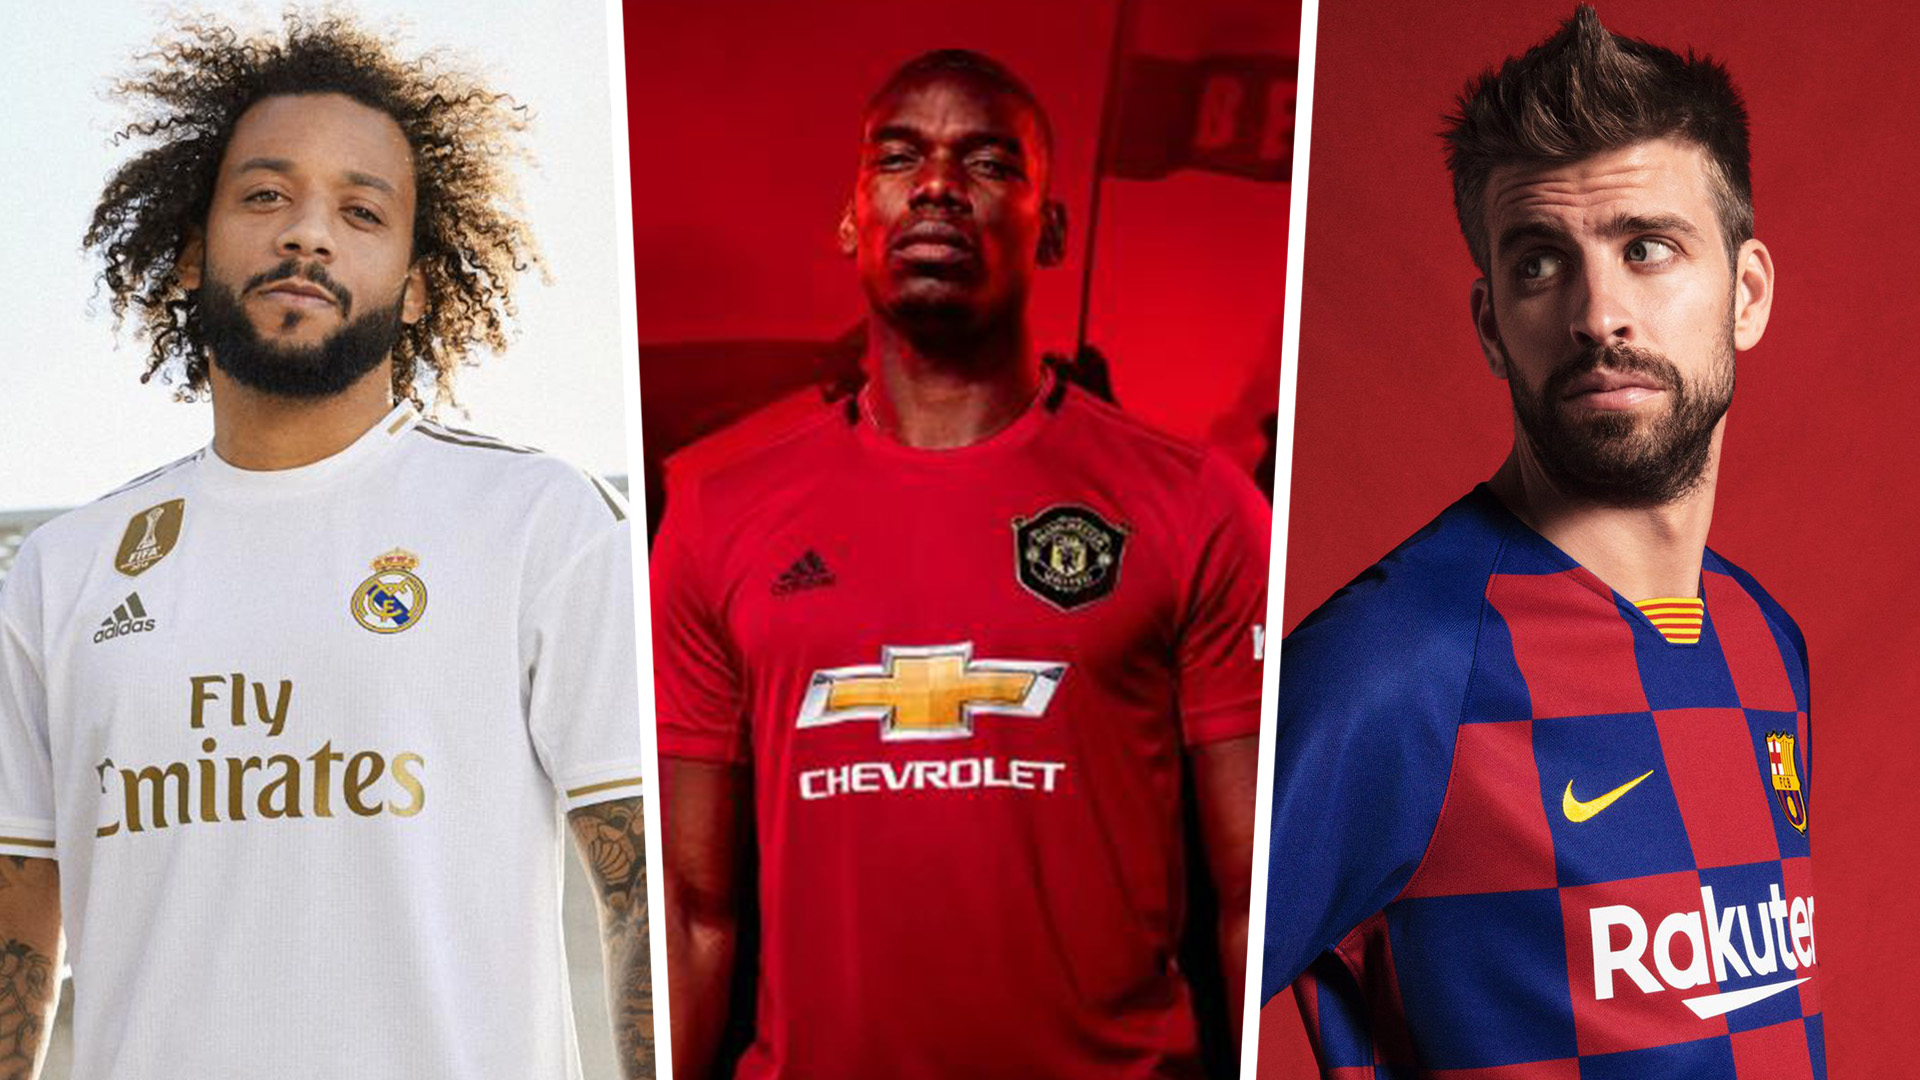 New 2019 20 football kits: Real Madrid, Manchester United